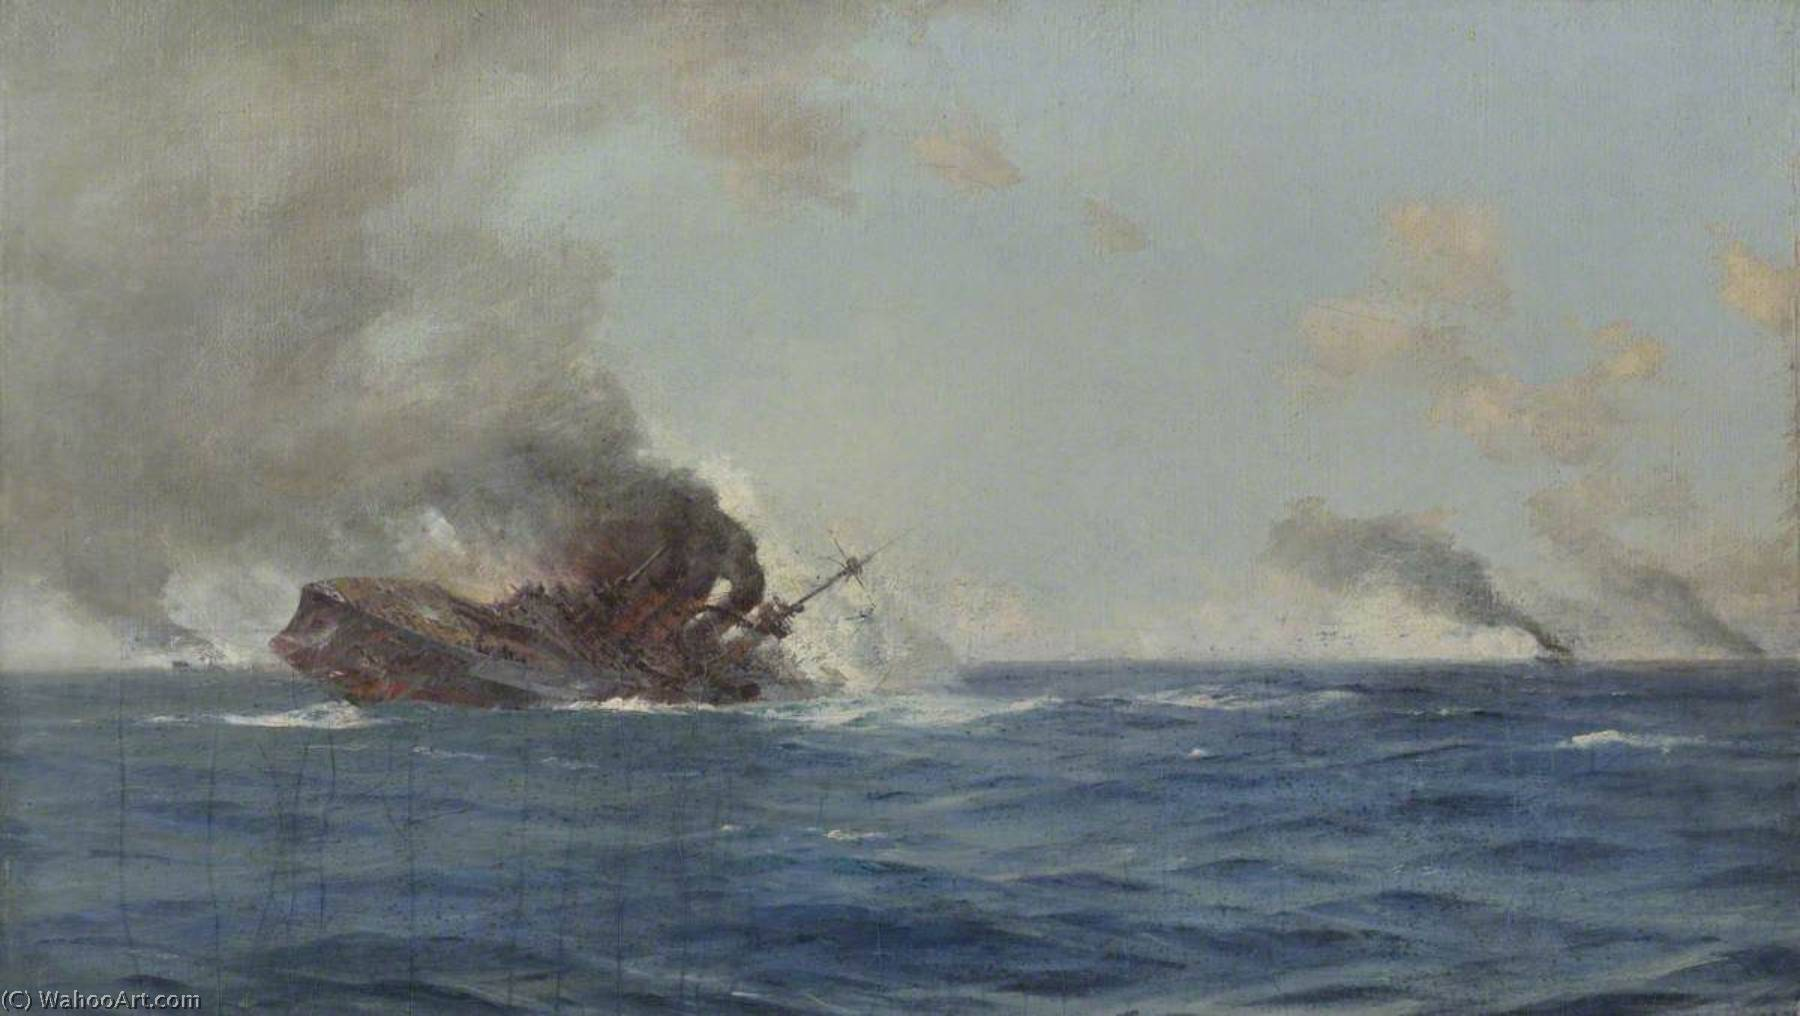 Sinking of 'The Scharnhorst' at the Battle of the Falkland Islands, 8 December 1914, Oil On Canvas by Thomas Jacques Somerscales (1842-1927)